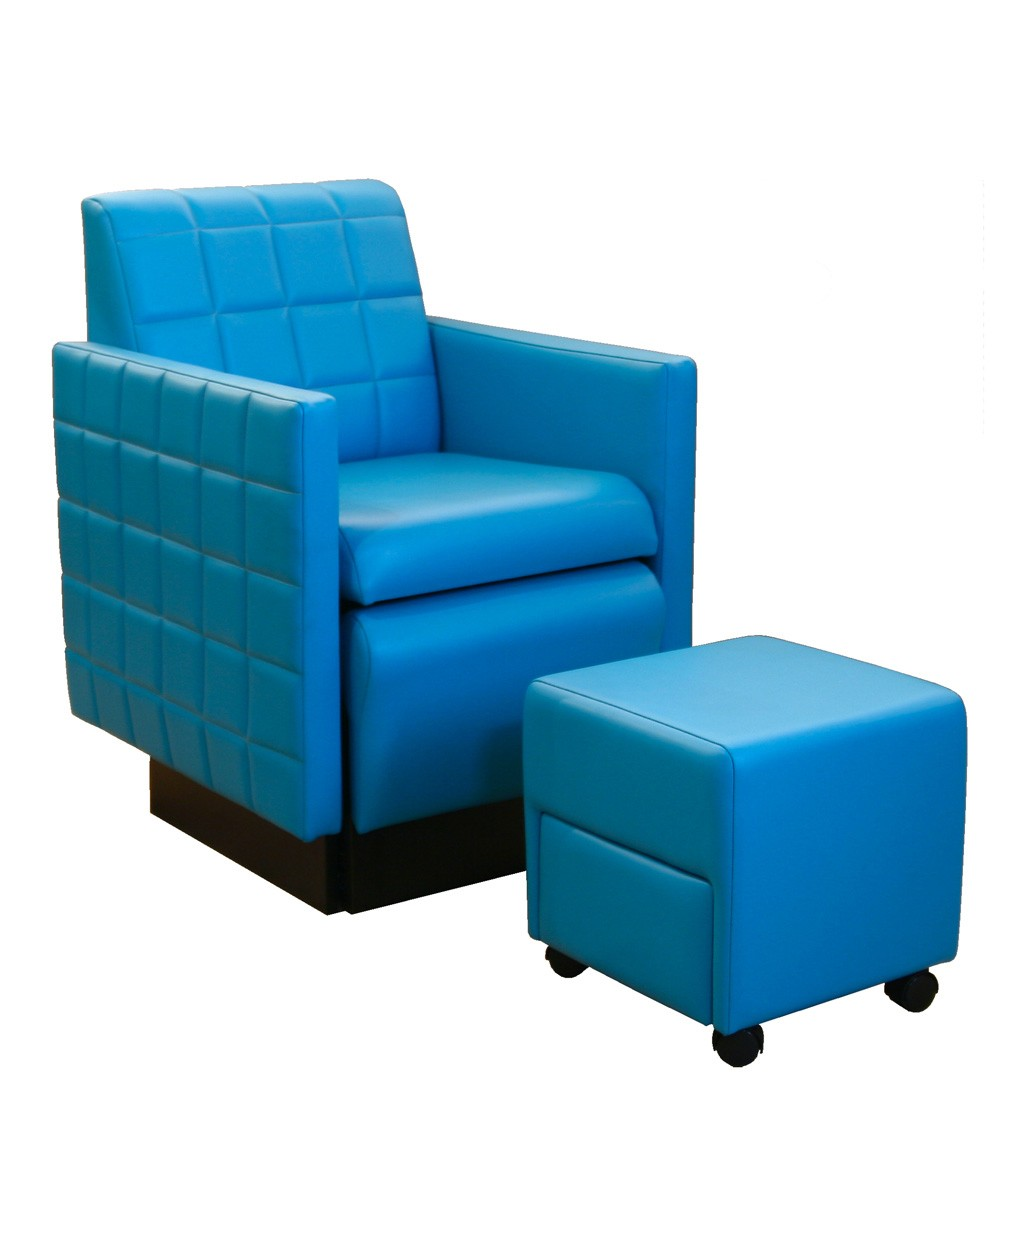 Pedicure Chairs No Plumbing Needed Collins 2560 Nouveau Club Pedicure Chair W Footsie Bath